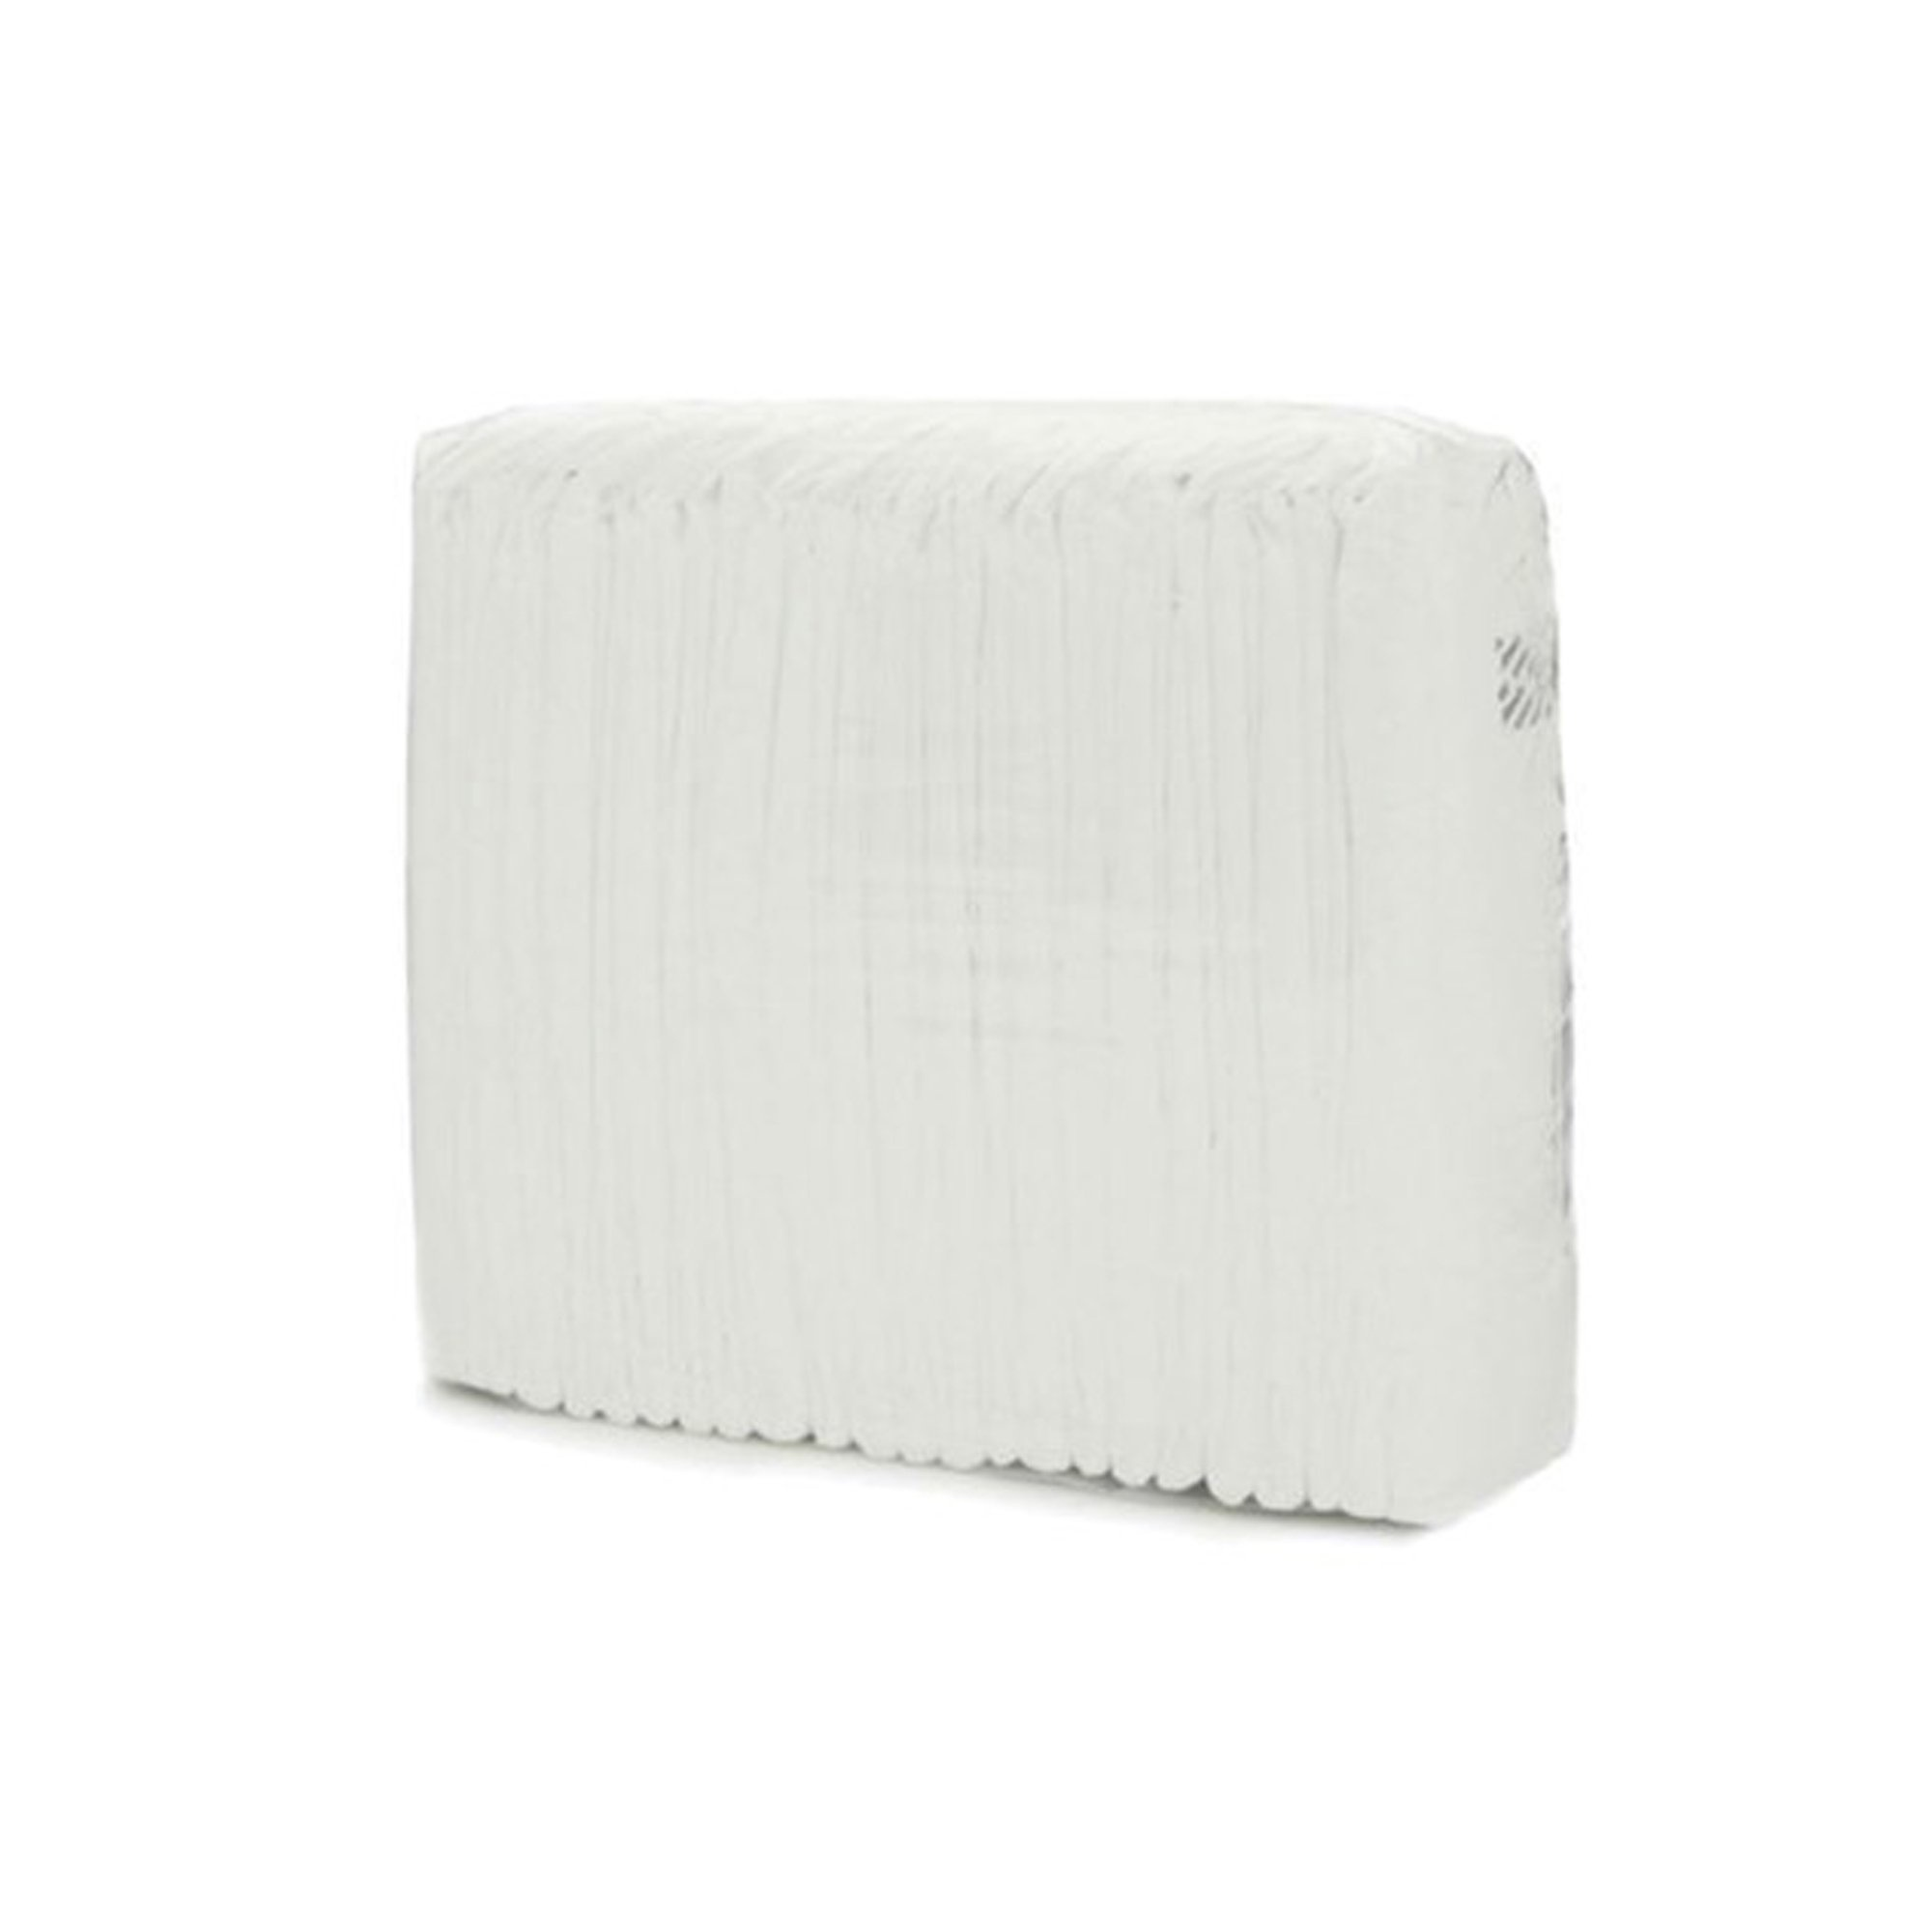 """Attends Instert Pads, Moderate Absorbency, IP0400A, 18.75"""" - Pack of 36"""